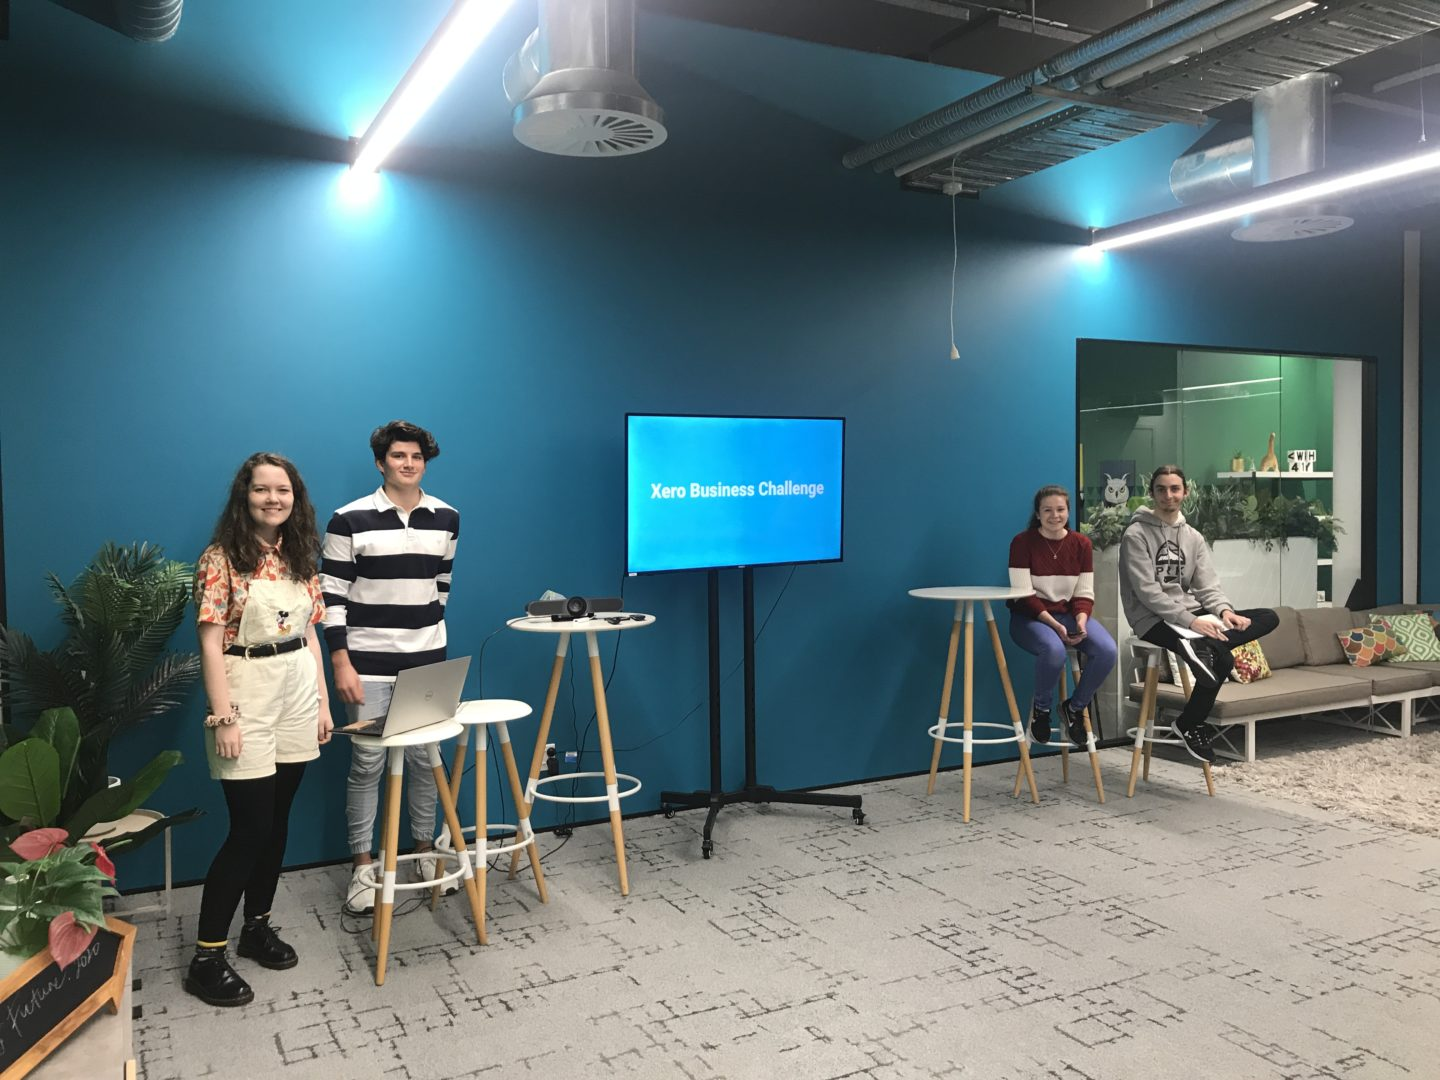 Photograph taken before the team presented on the final day. The four young people stand next to the screen and smile at the camera.